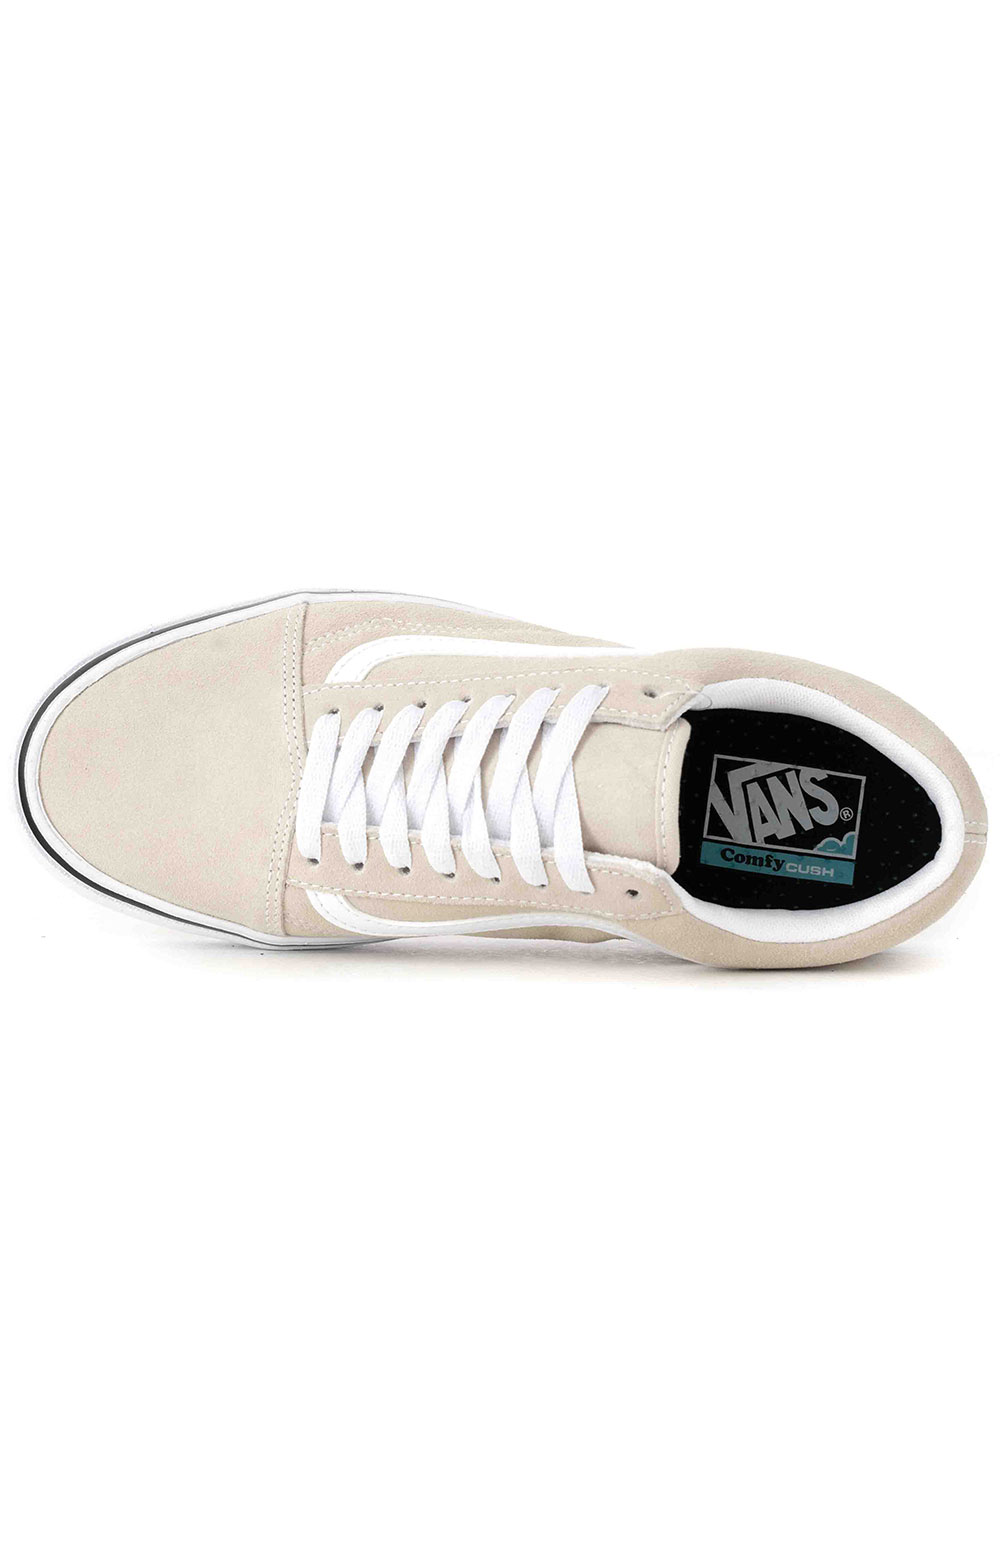 (WMA2QQ) Suede ComfyCush Old Skool Shoes - Oatmeal 2